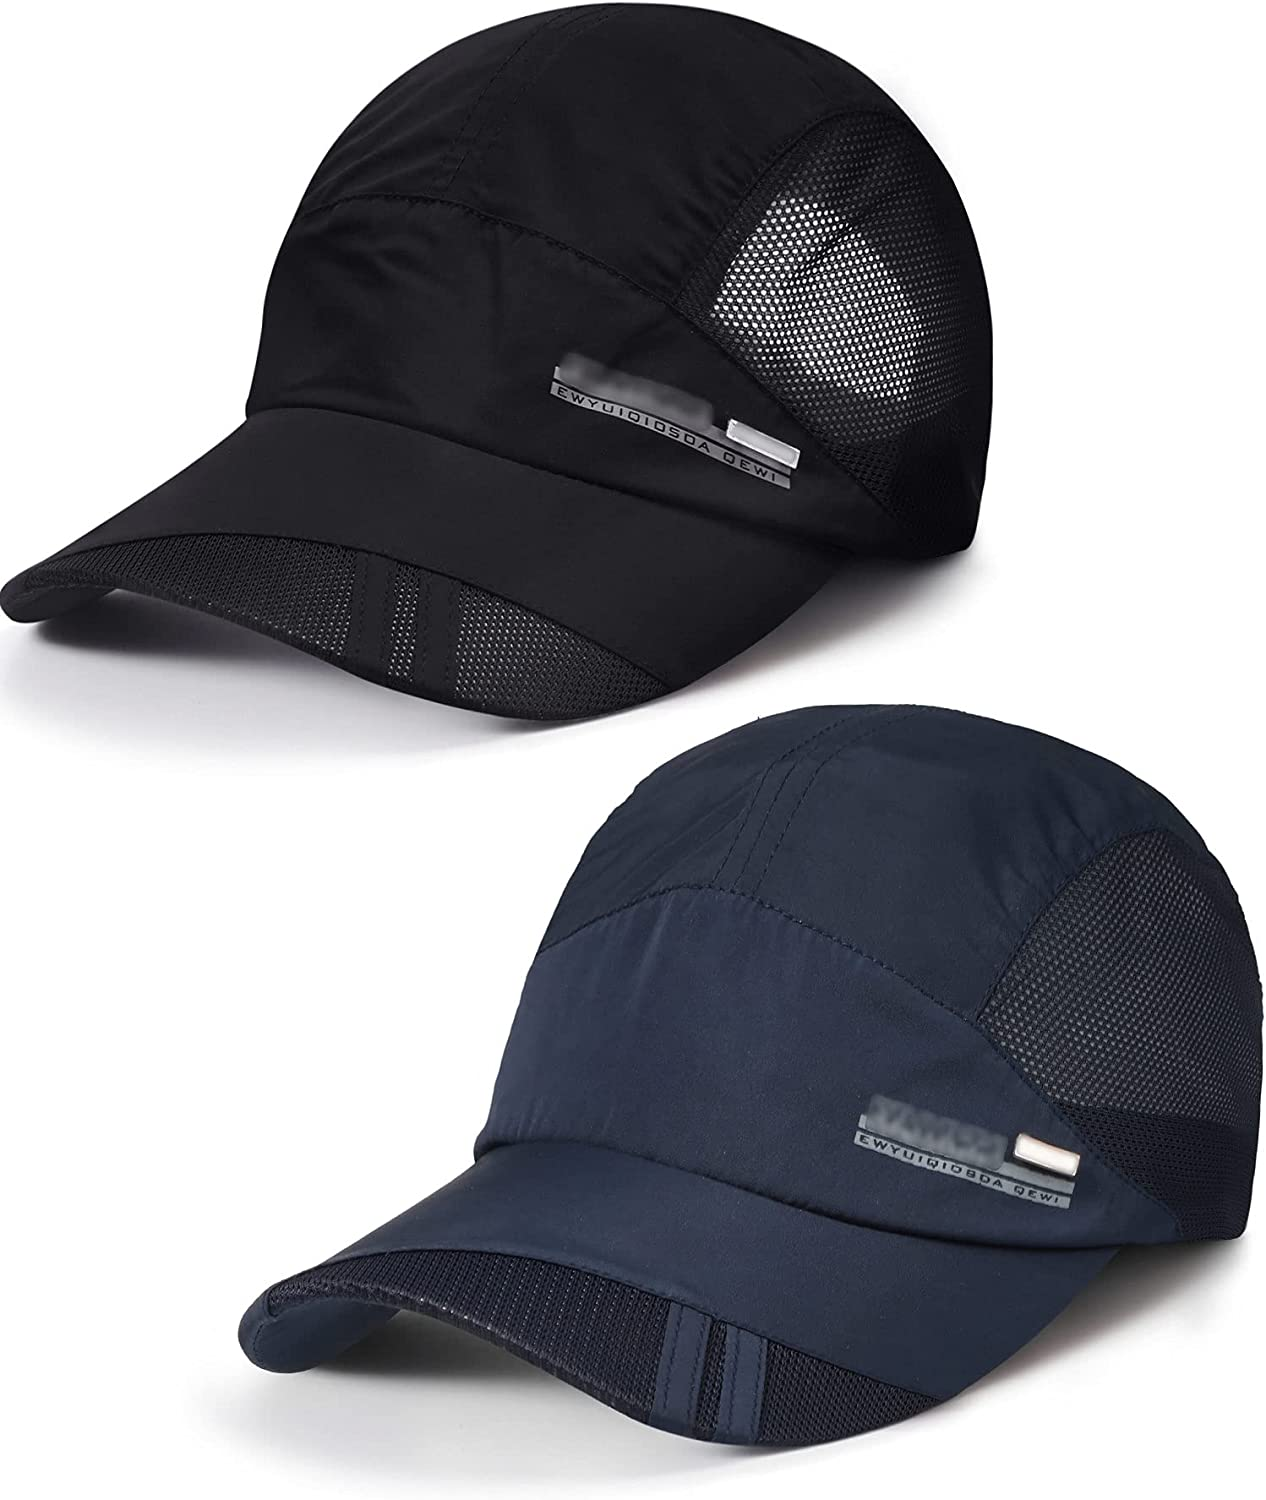 2 Pieces Adjustable Baseball Cap Quick Hats Sun Al sold Popular brand out. f Sports Dry